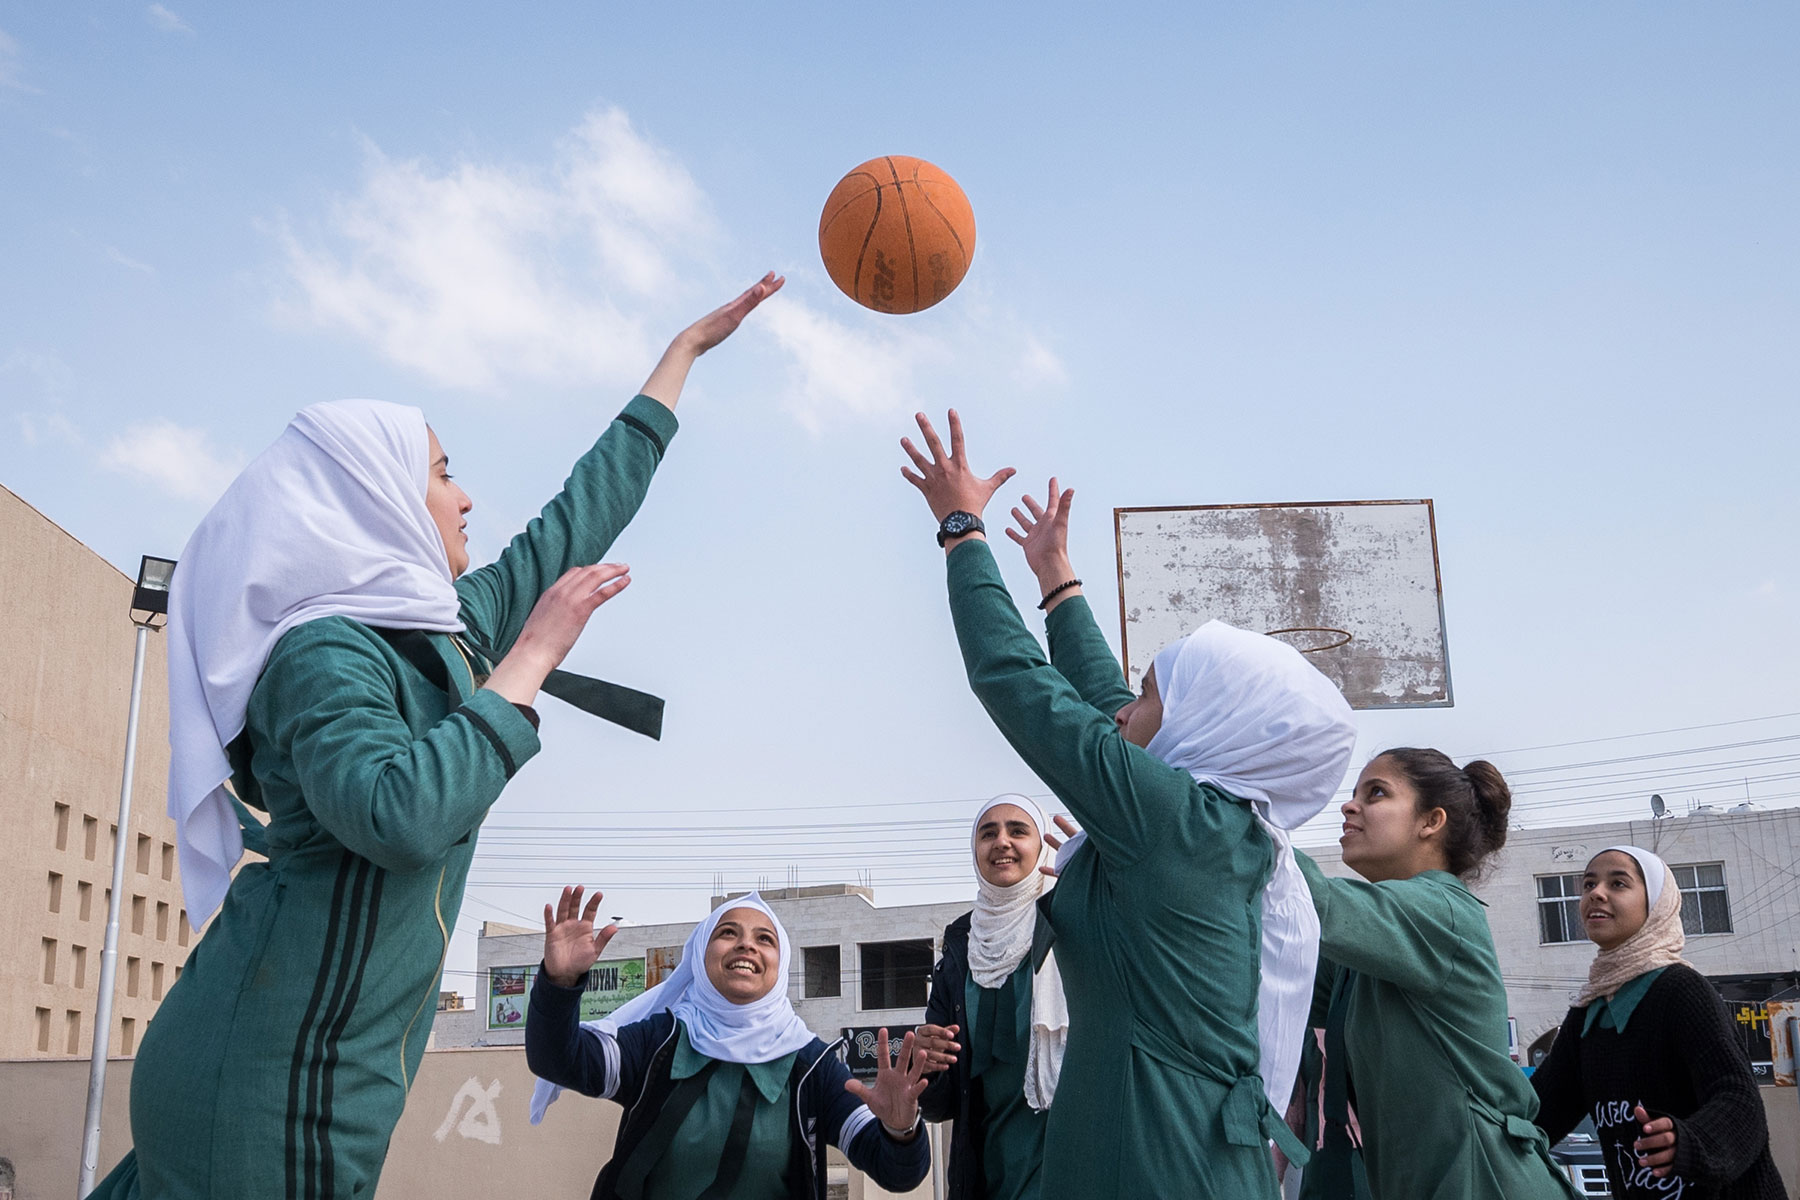 Basketball training is underway at Rufaida Al Aslamieh. The school serves more than 1,000 students from kindergarten age up to 10th grade, most of them girls from Jordan but also some from Syria and other countries.